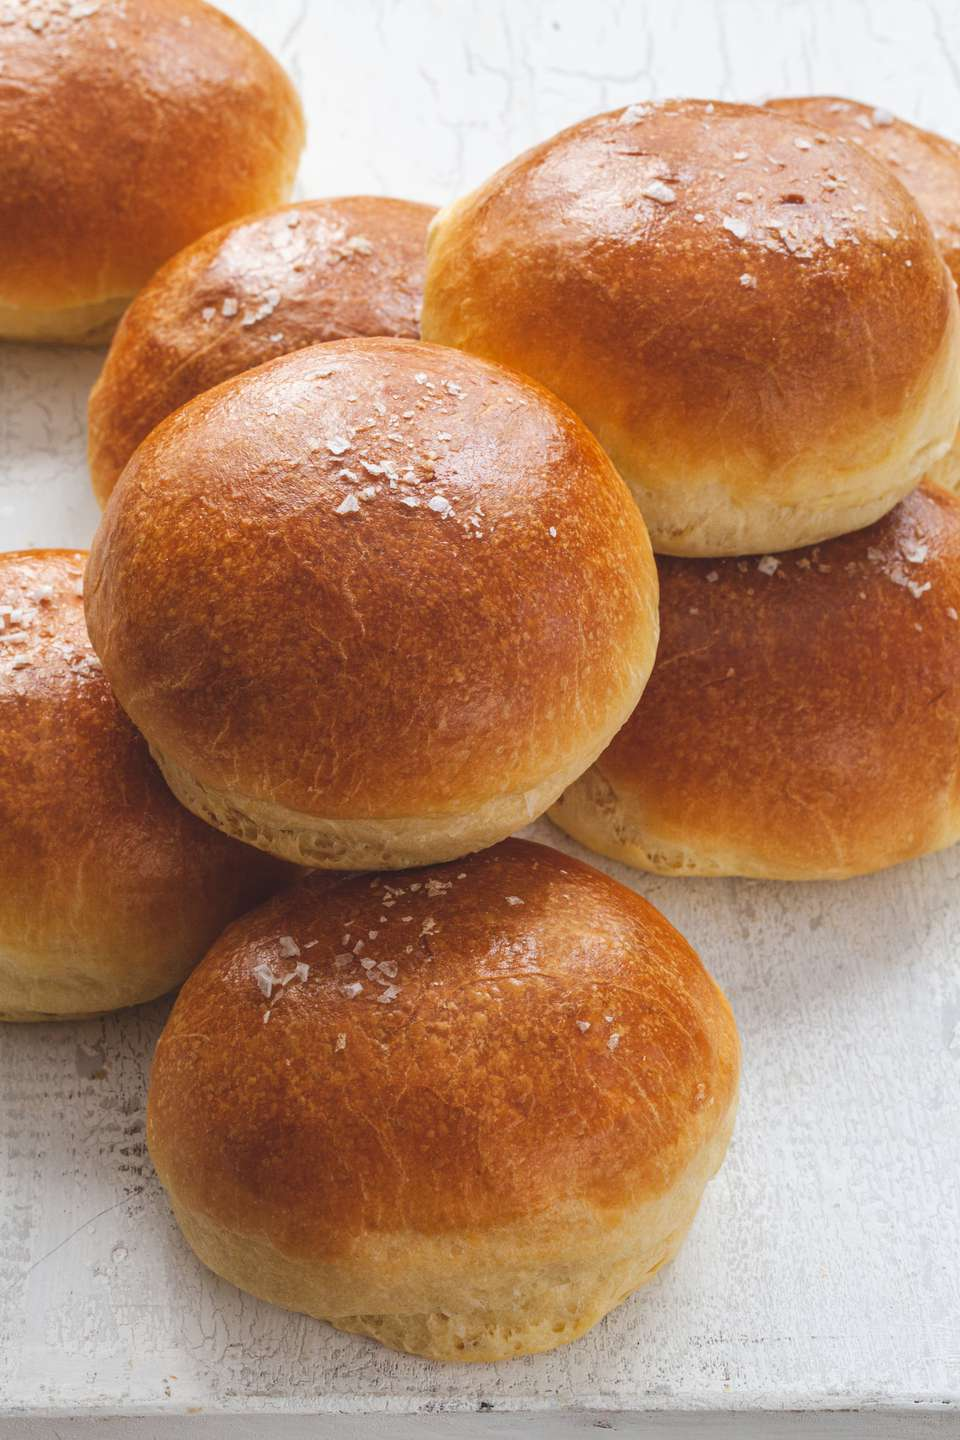 The Fluffiest Brioche Buns stacked on a counter.